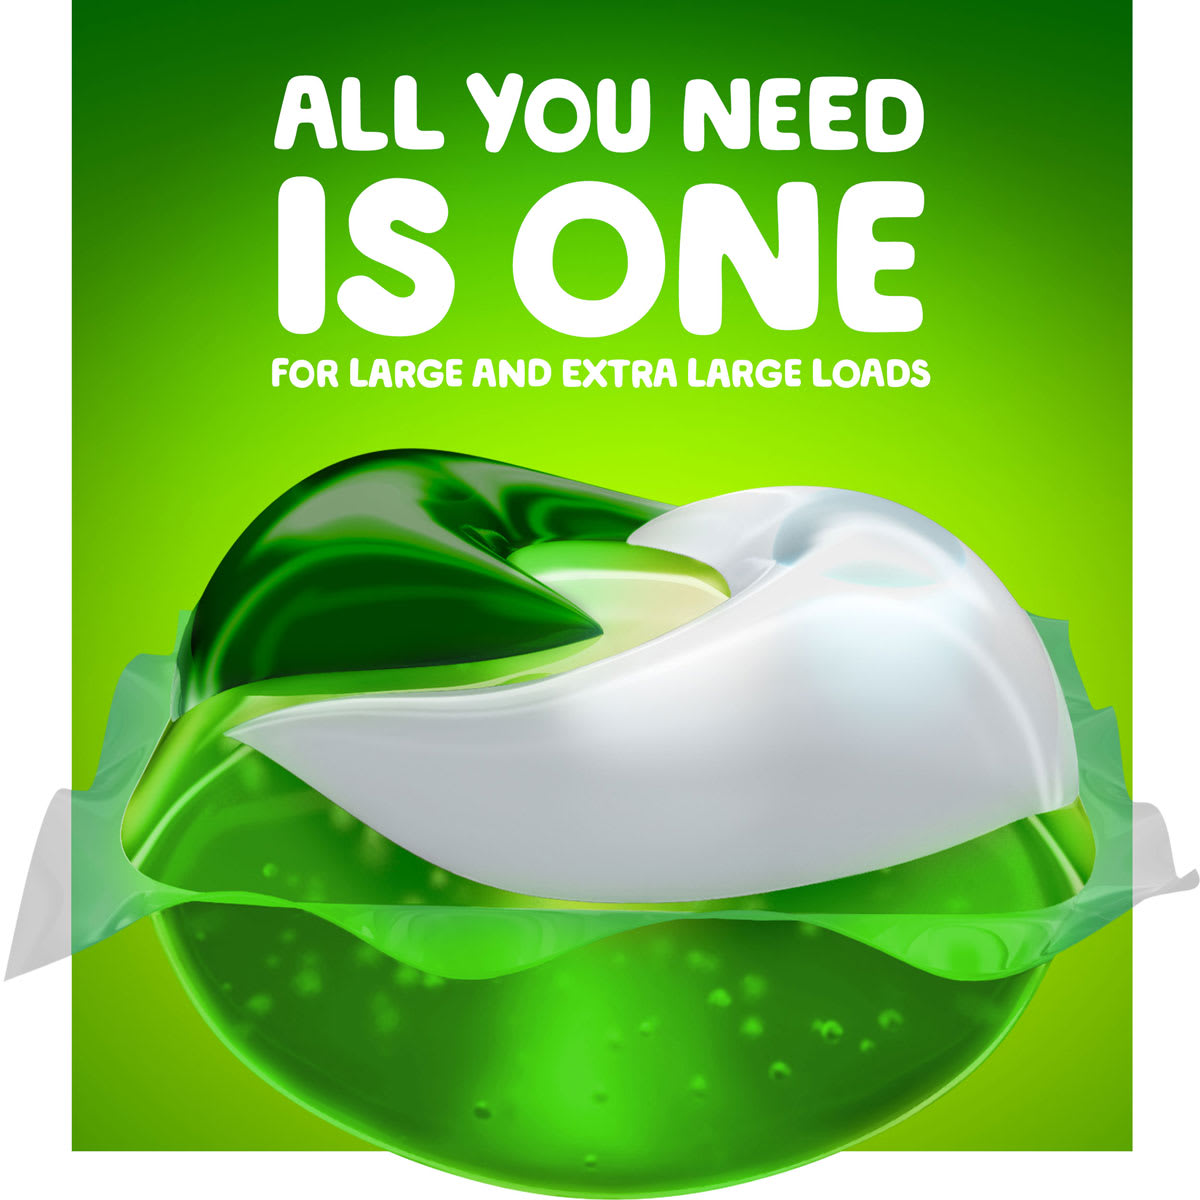 All you need is one Gain Ultra Laundry Pac for large and extra large loads